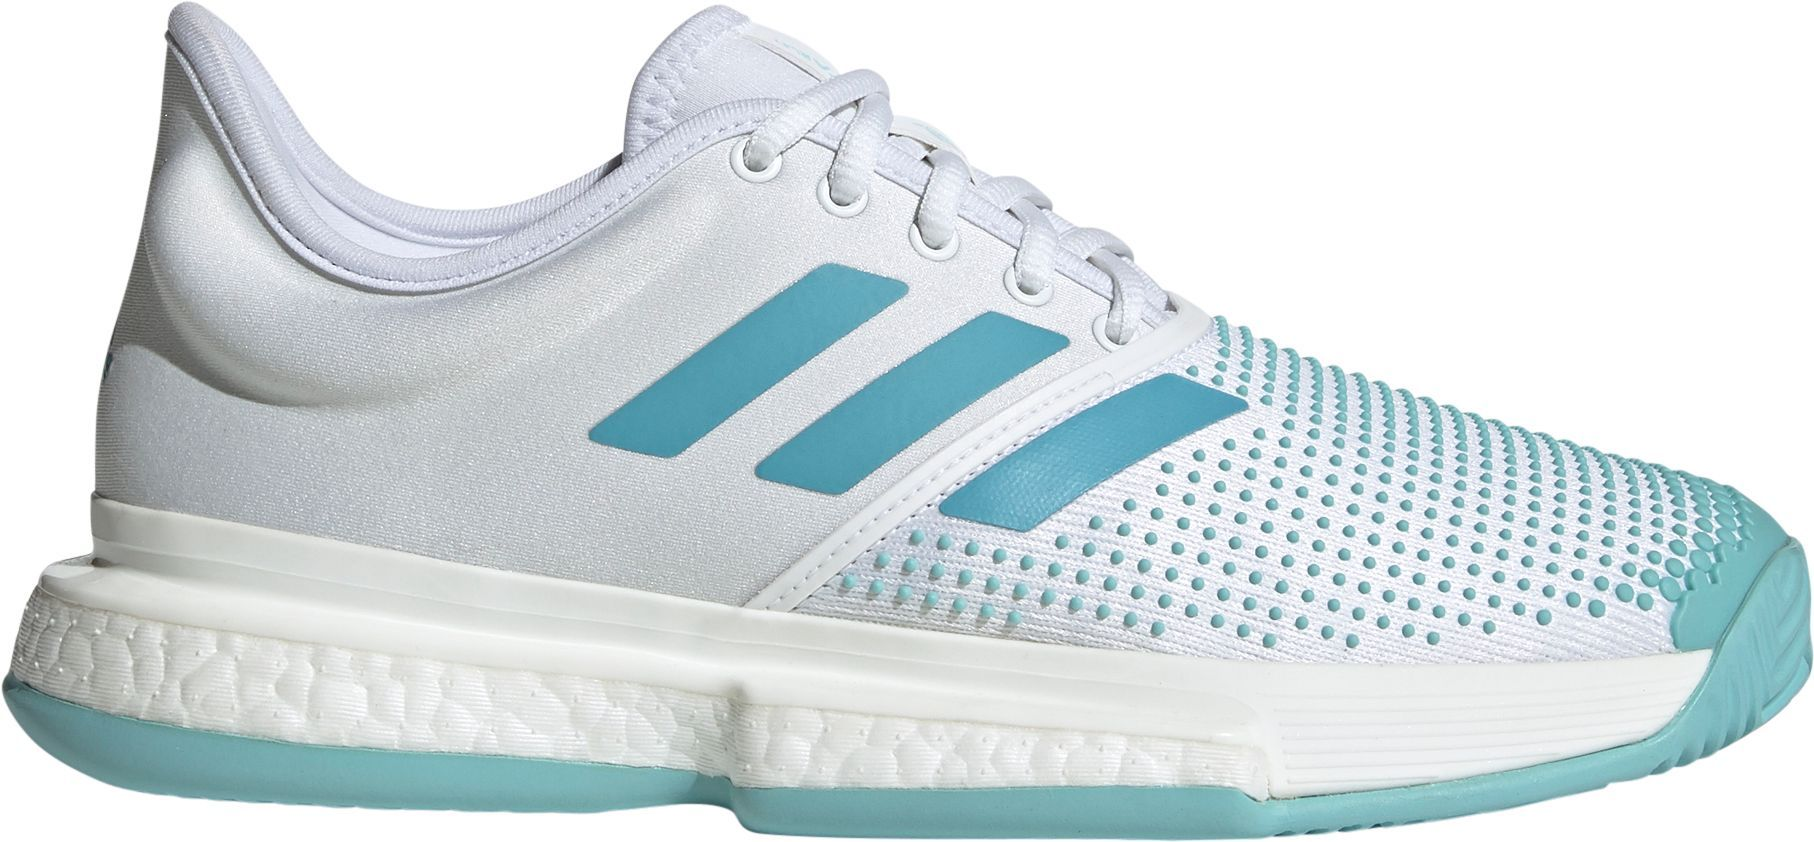 adidas SoleCourt Boost x Parley Men/'s New Blue Spirit White Tennis Shoes CG6339